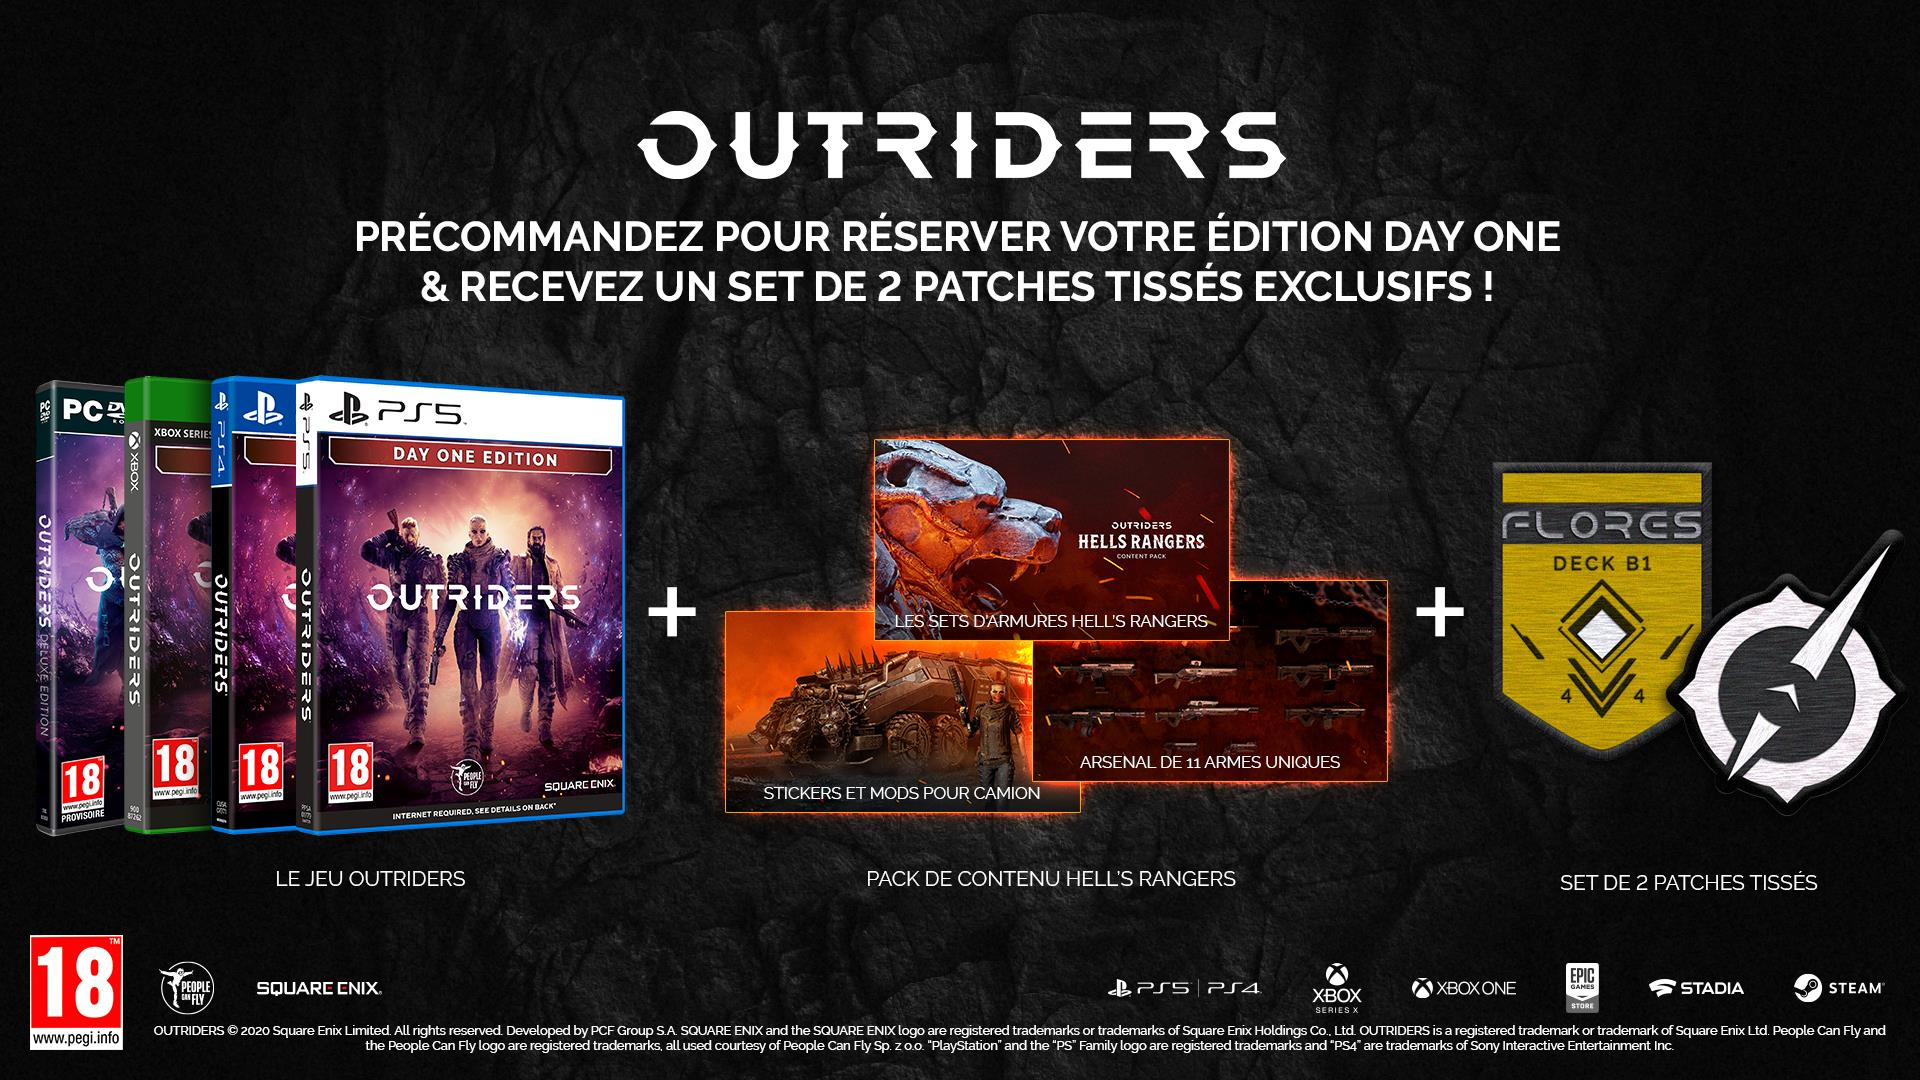 Xbox One - Playstation 4 : Outriders Day One Edition